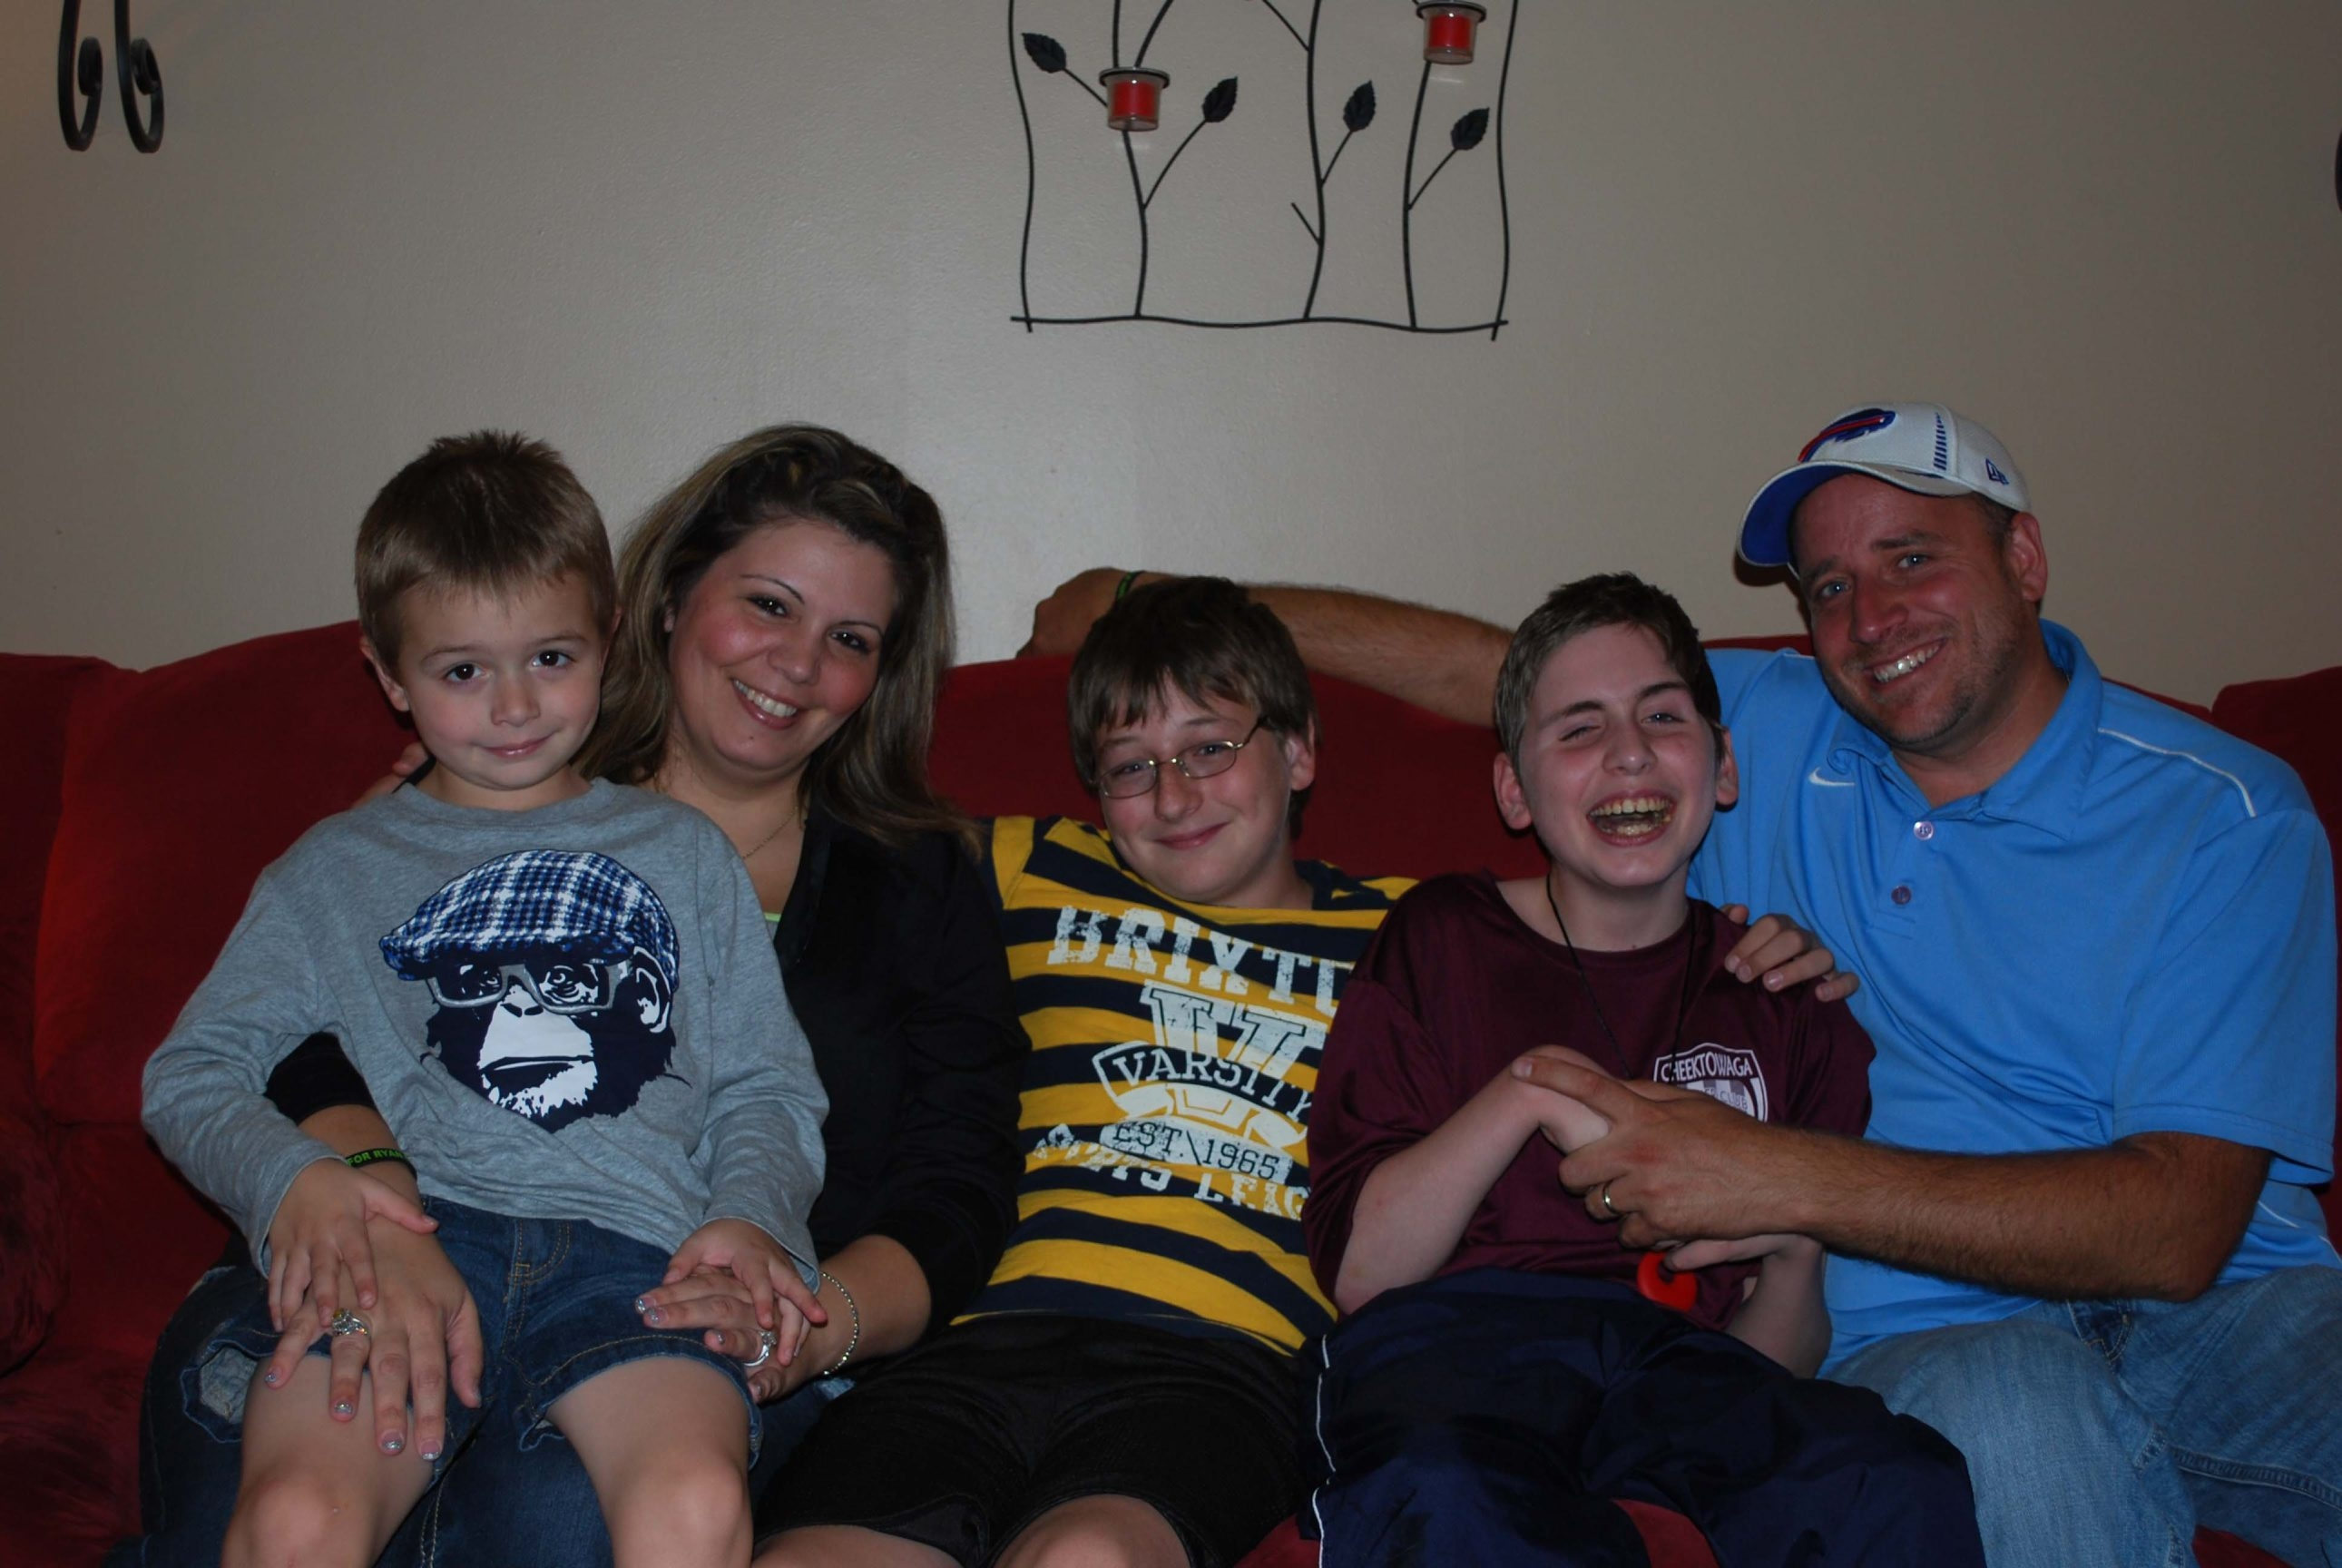 Life has changed dramatically for the Hunter family – mother Jessica, stepfather Matthew and sons Landon, Ryan Hunter and Ryan Orlando – since Ryan Orlando was hit by a car while Rollerblading in 2011.